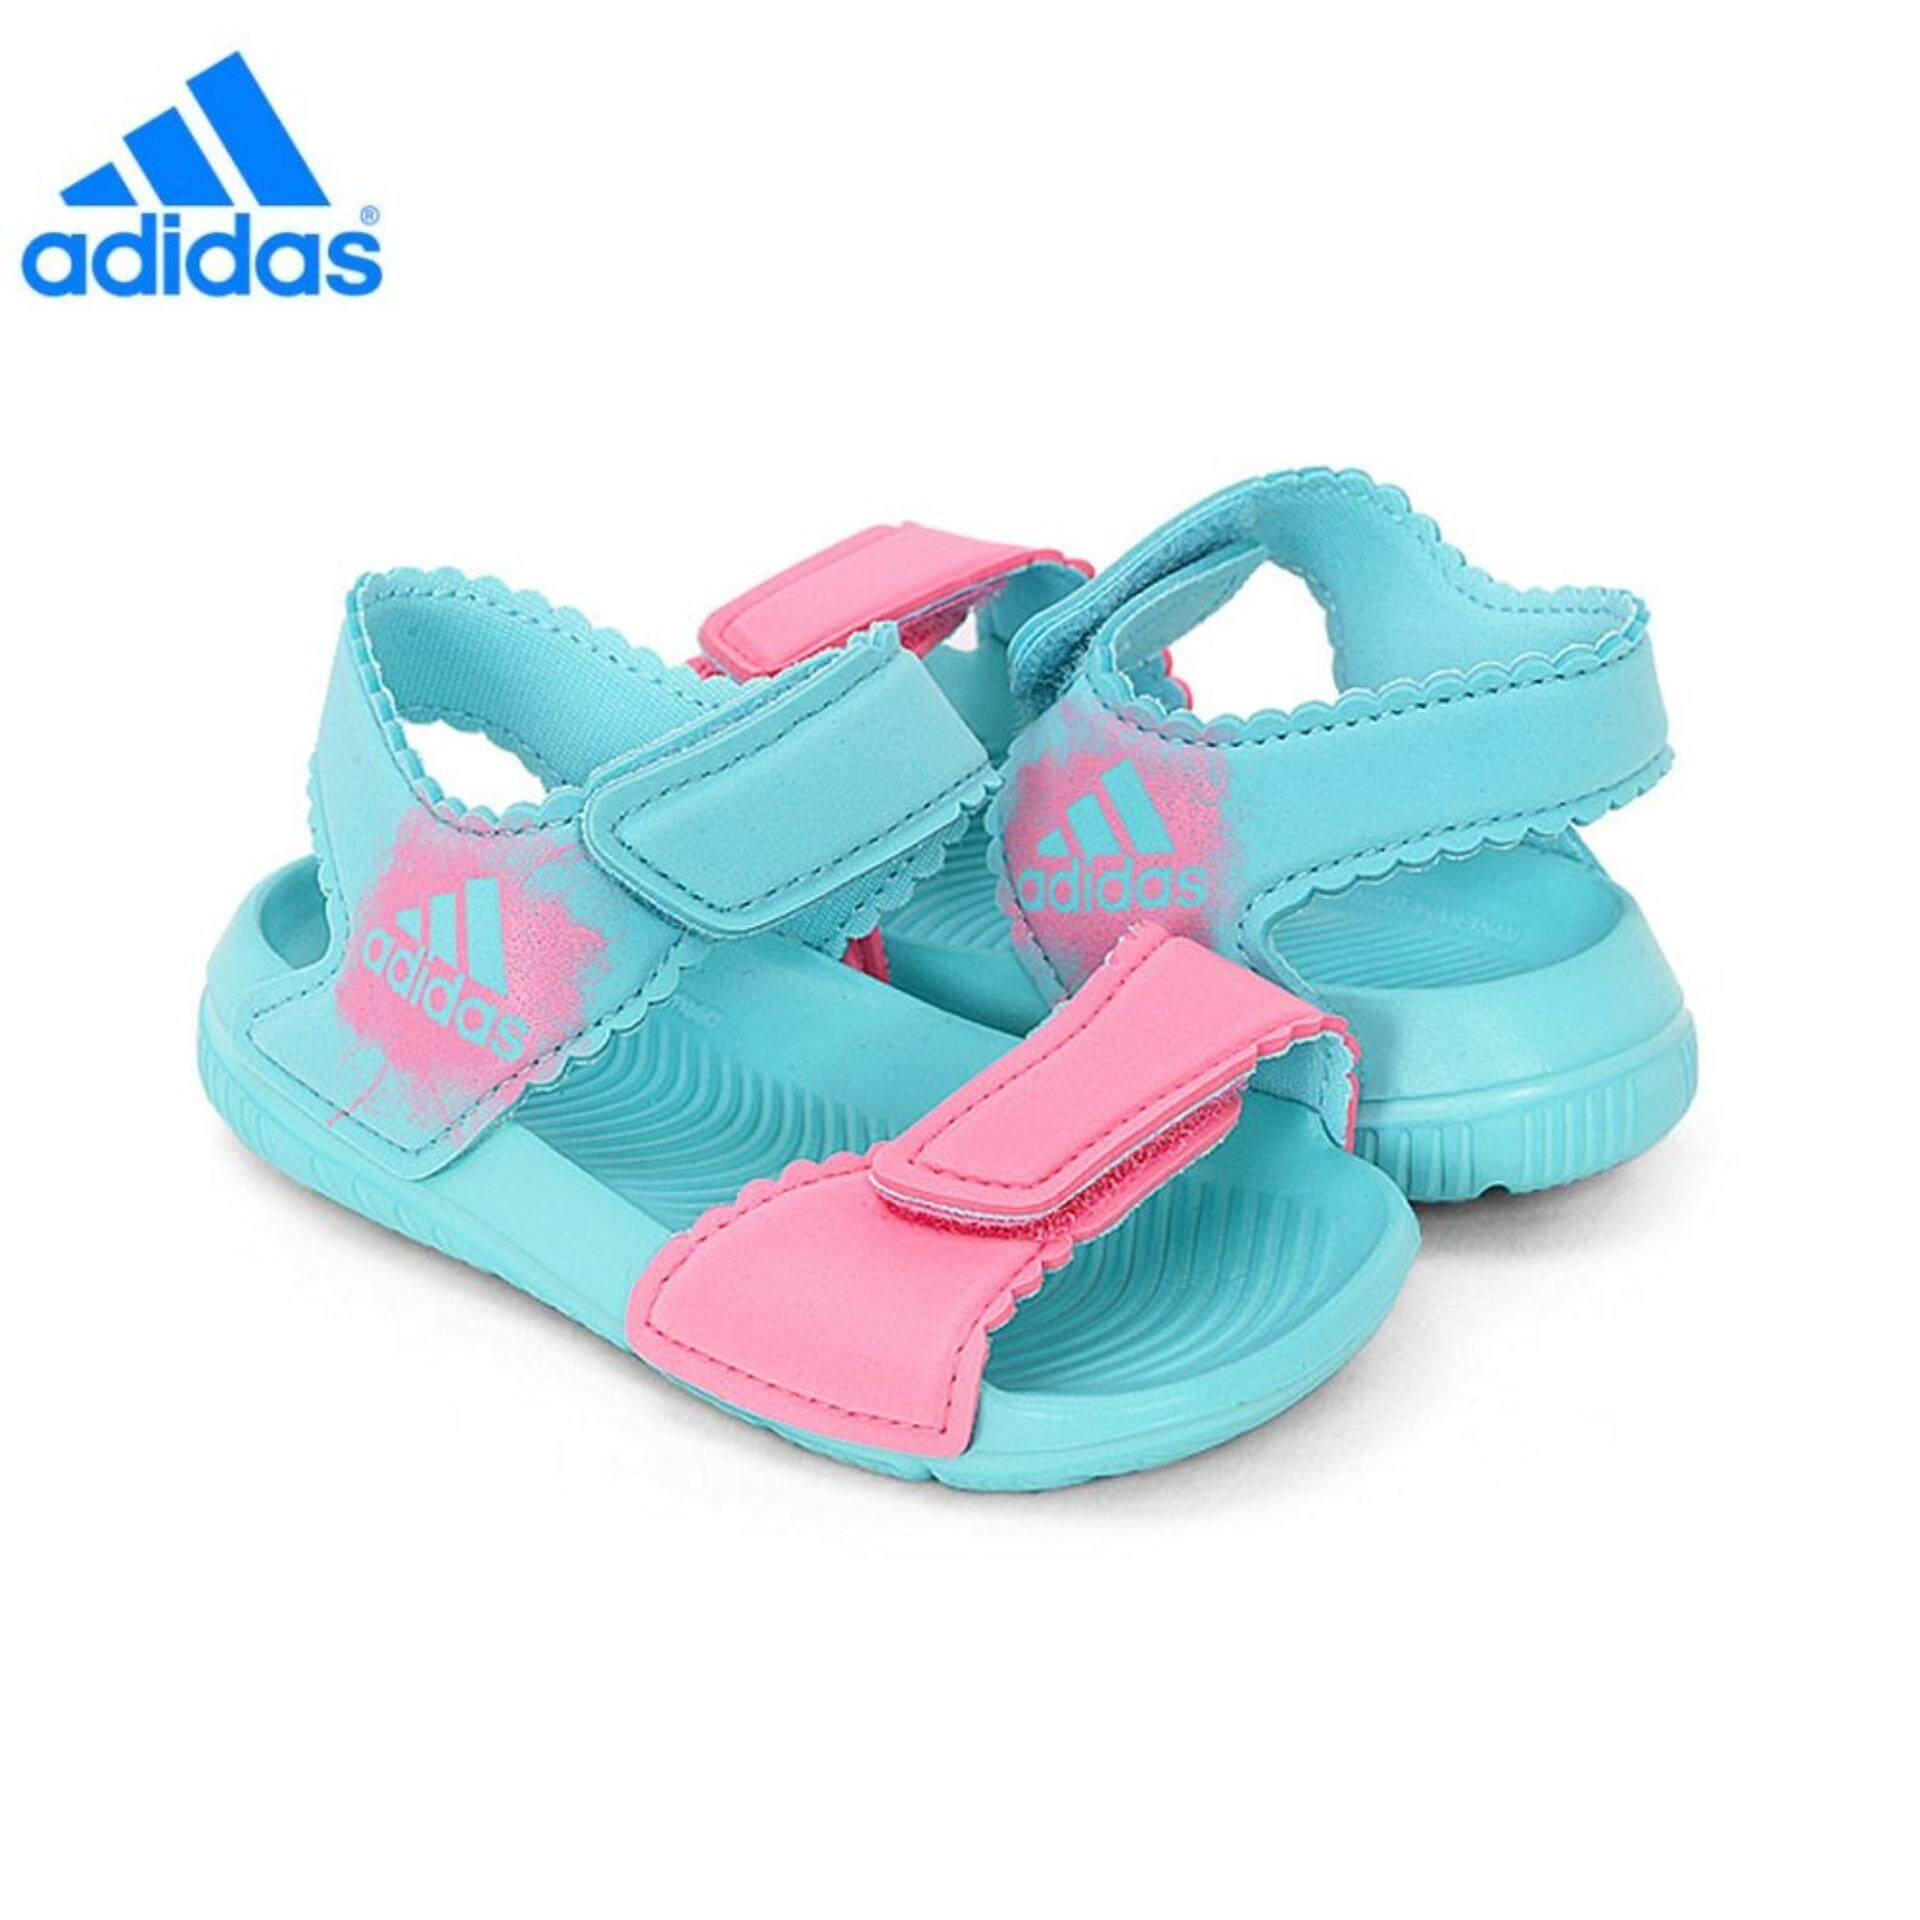 Buy Sports Sandals Online | lazada.sg